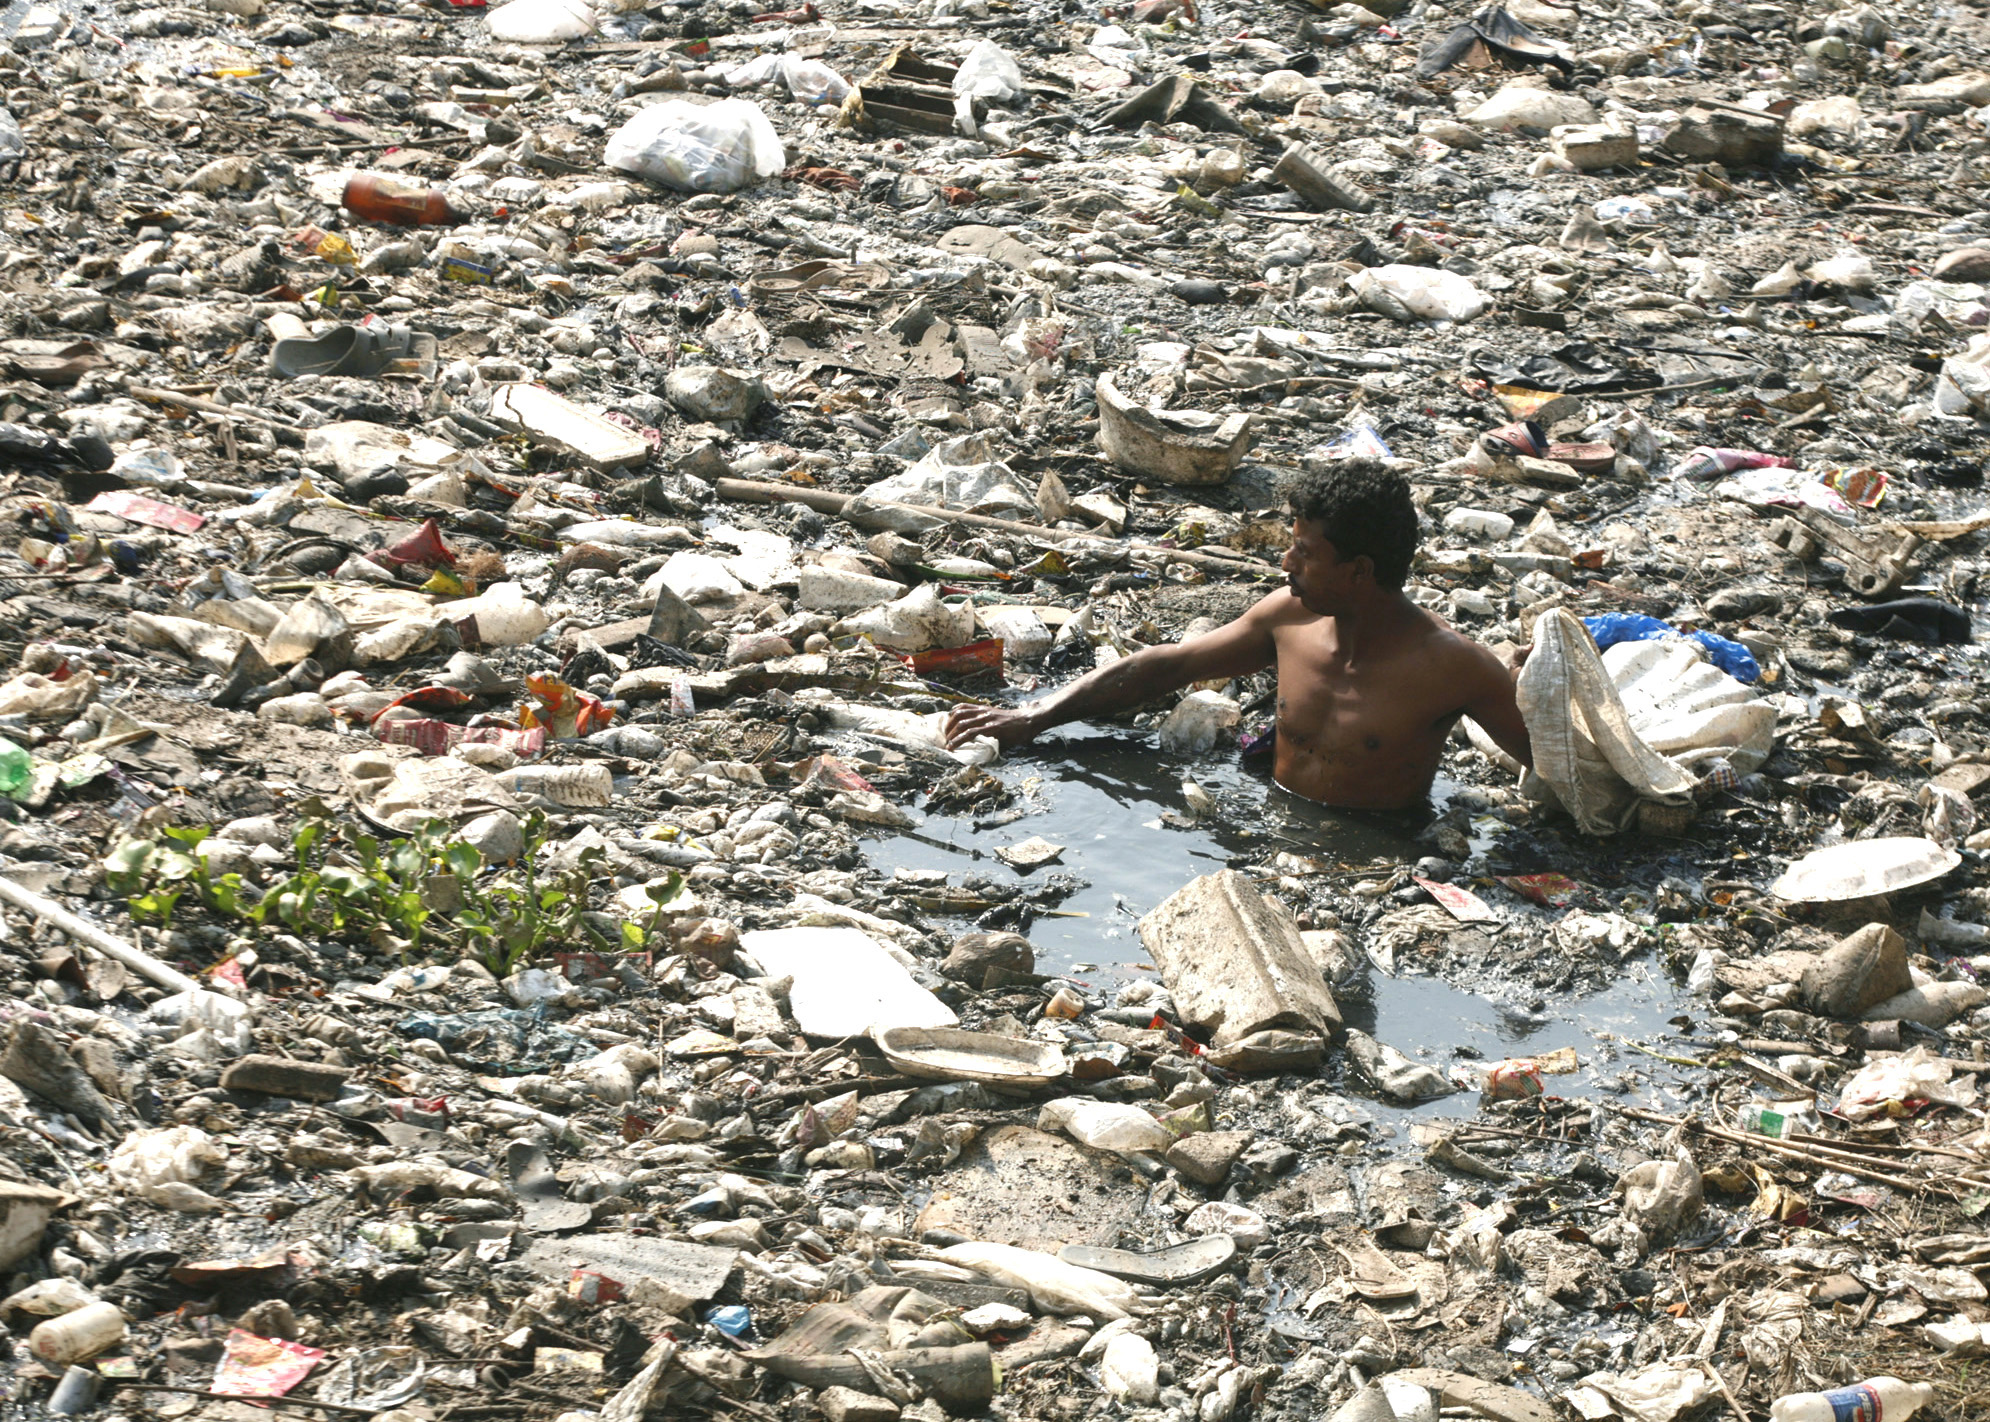 A man scavenges for plastic bags at an open drain in Mumbai February 22, 2007. REUTERS/Prashanth Vishwanathan (INDIA) - RTR1MP23